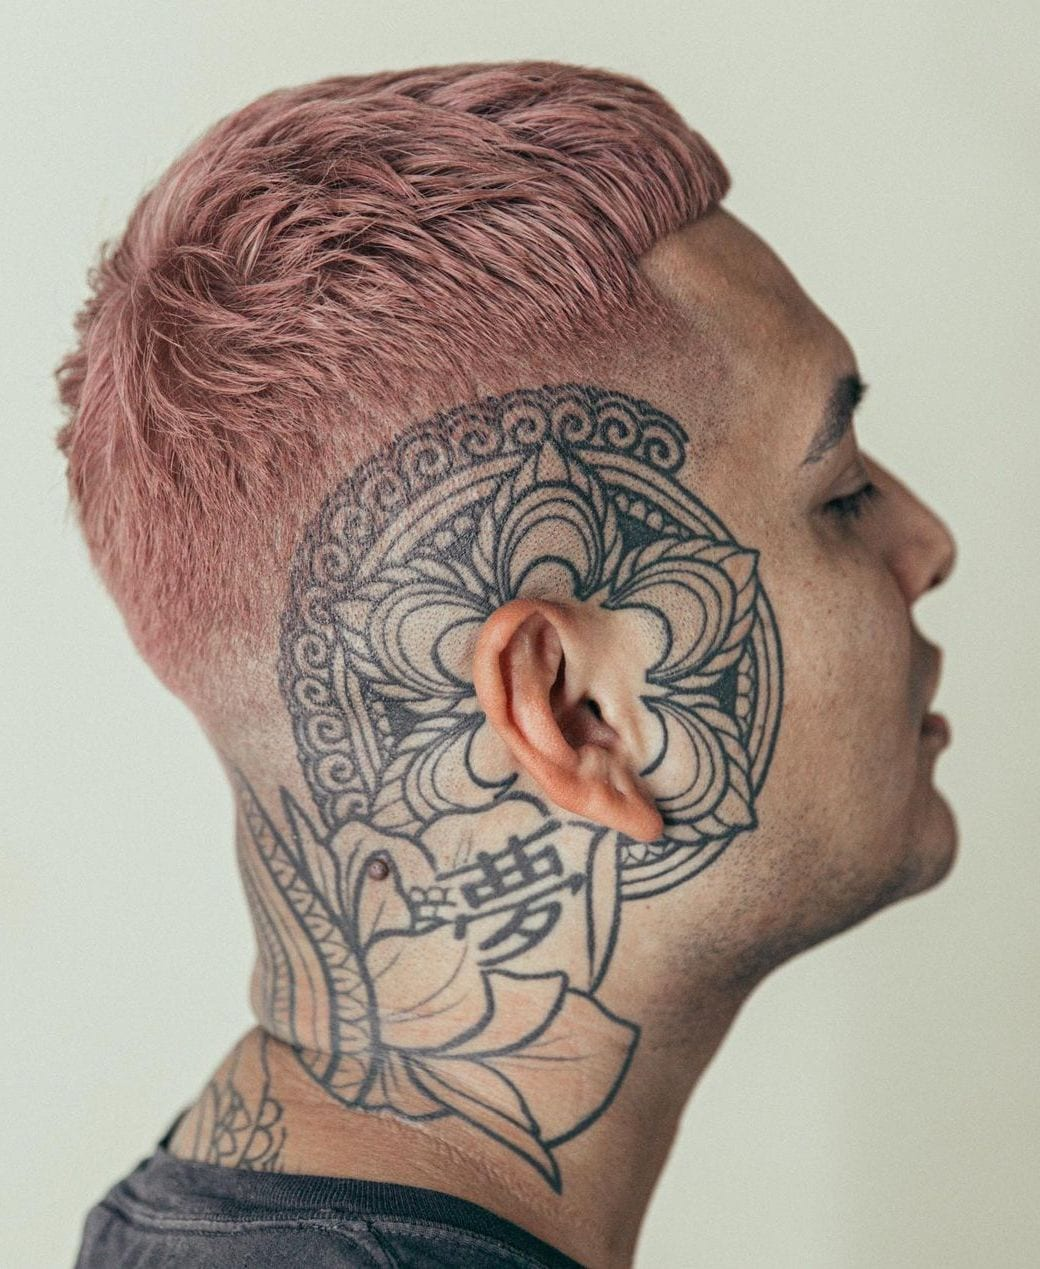 Pastel Pink French Crop with Taper Fade